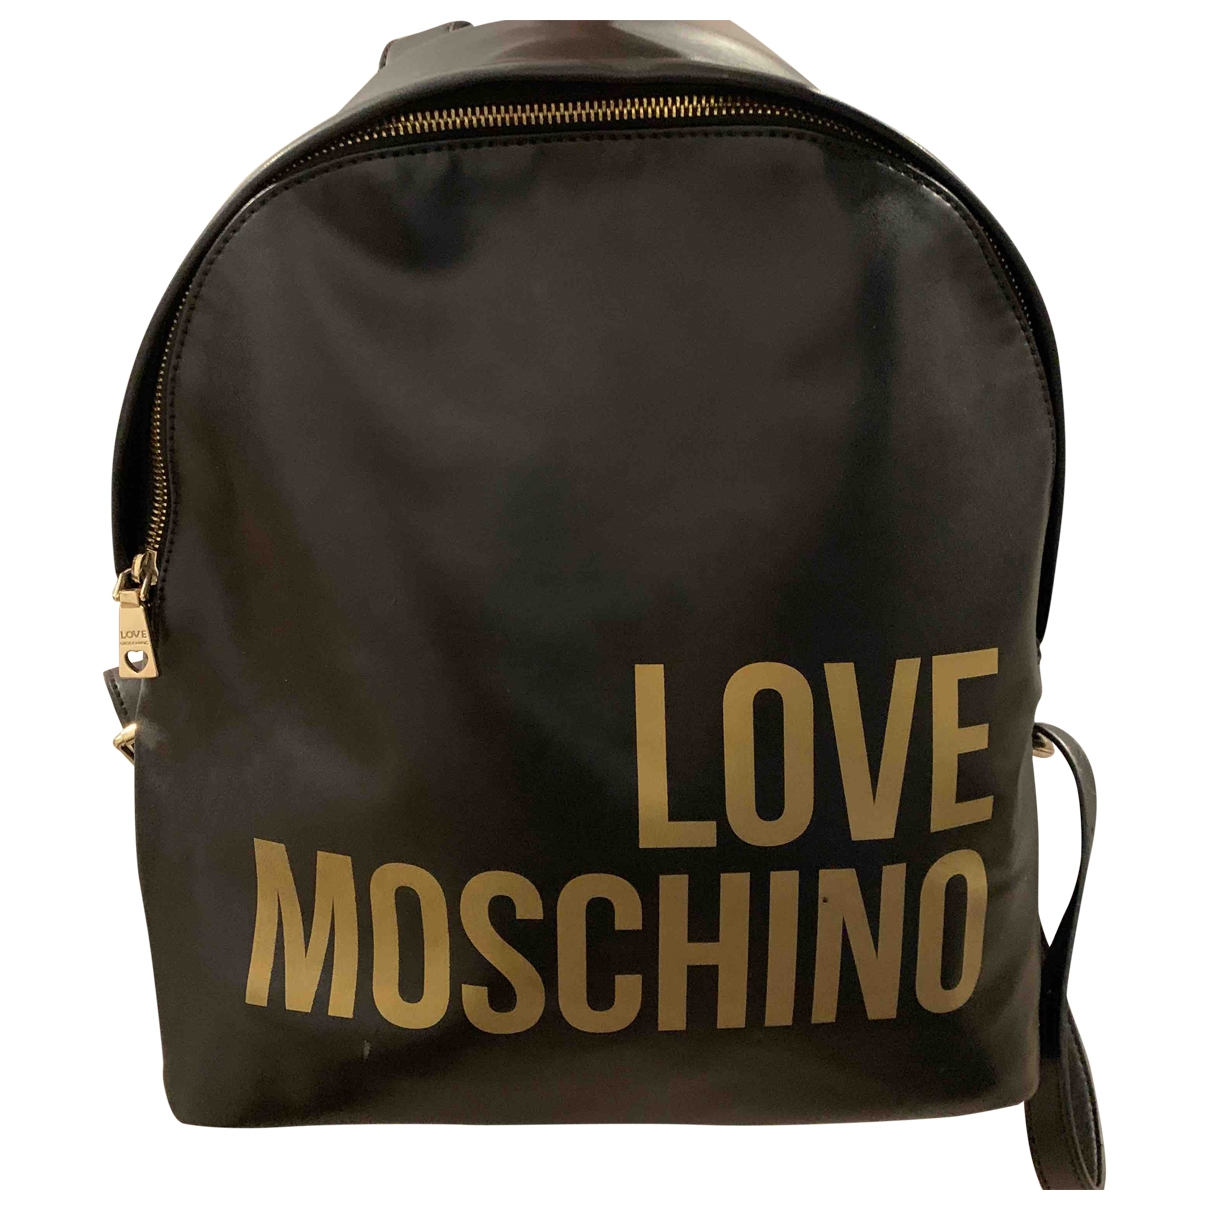 Moschino \N Black Leather handbag for Women \N